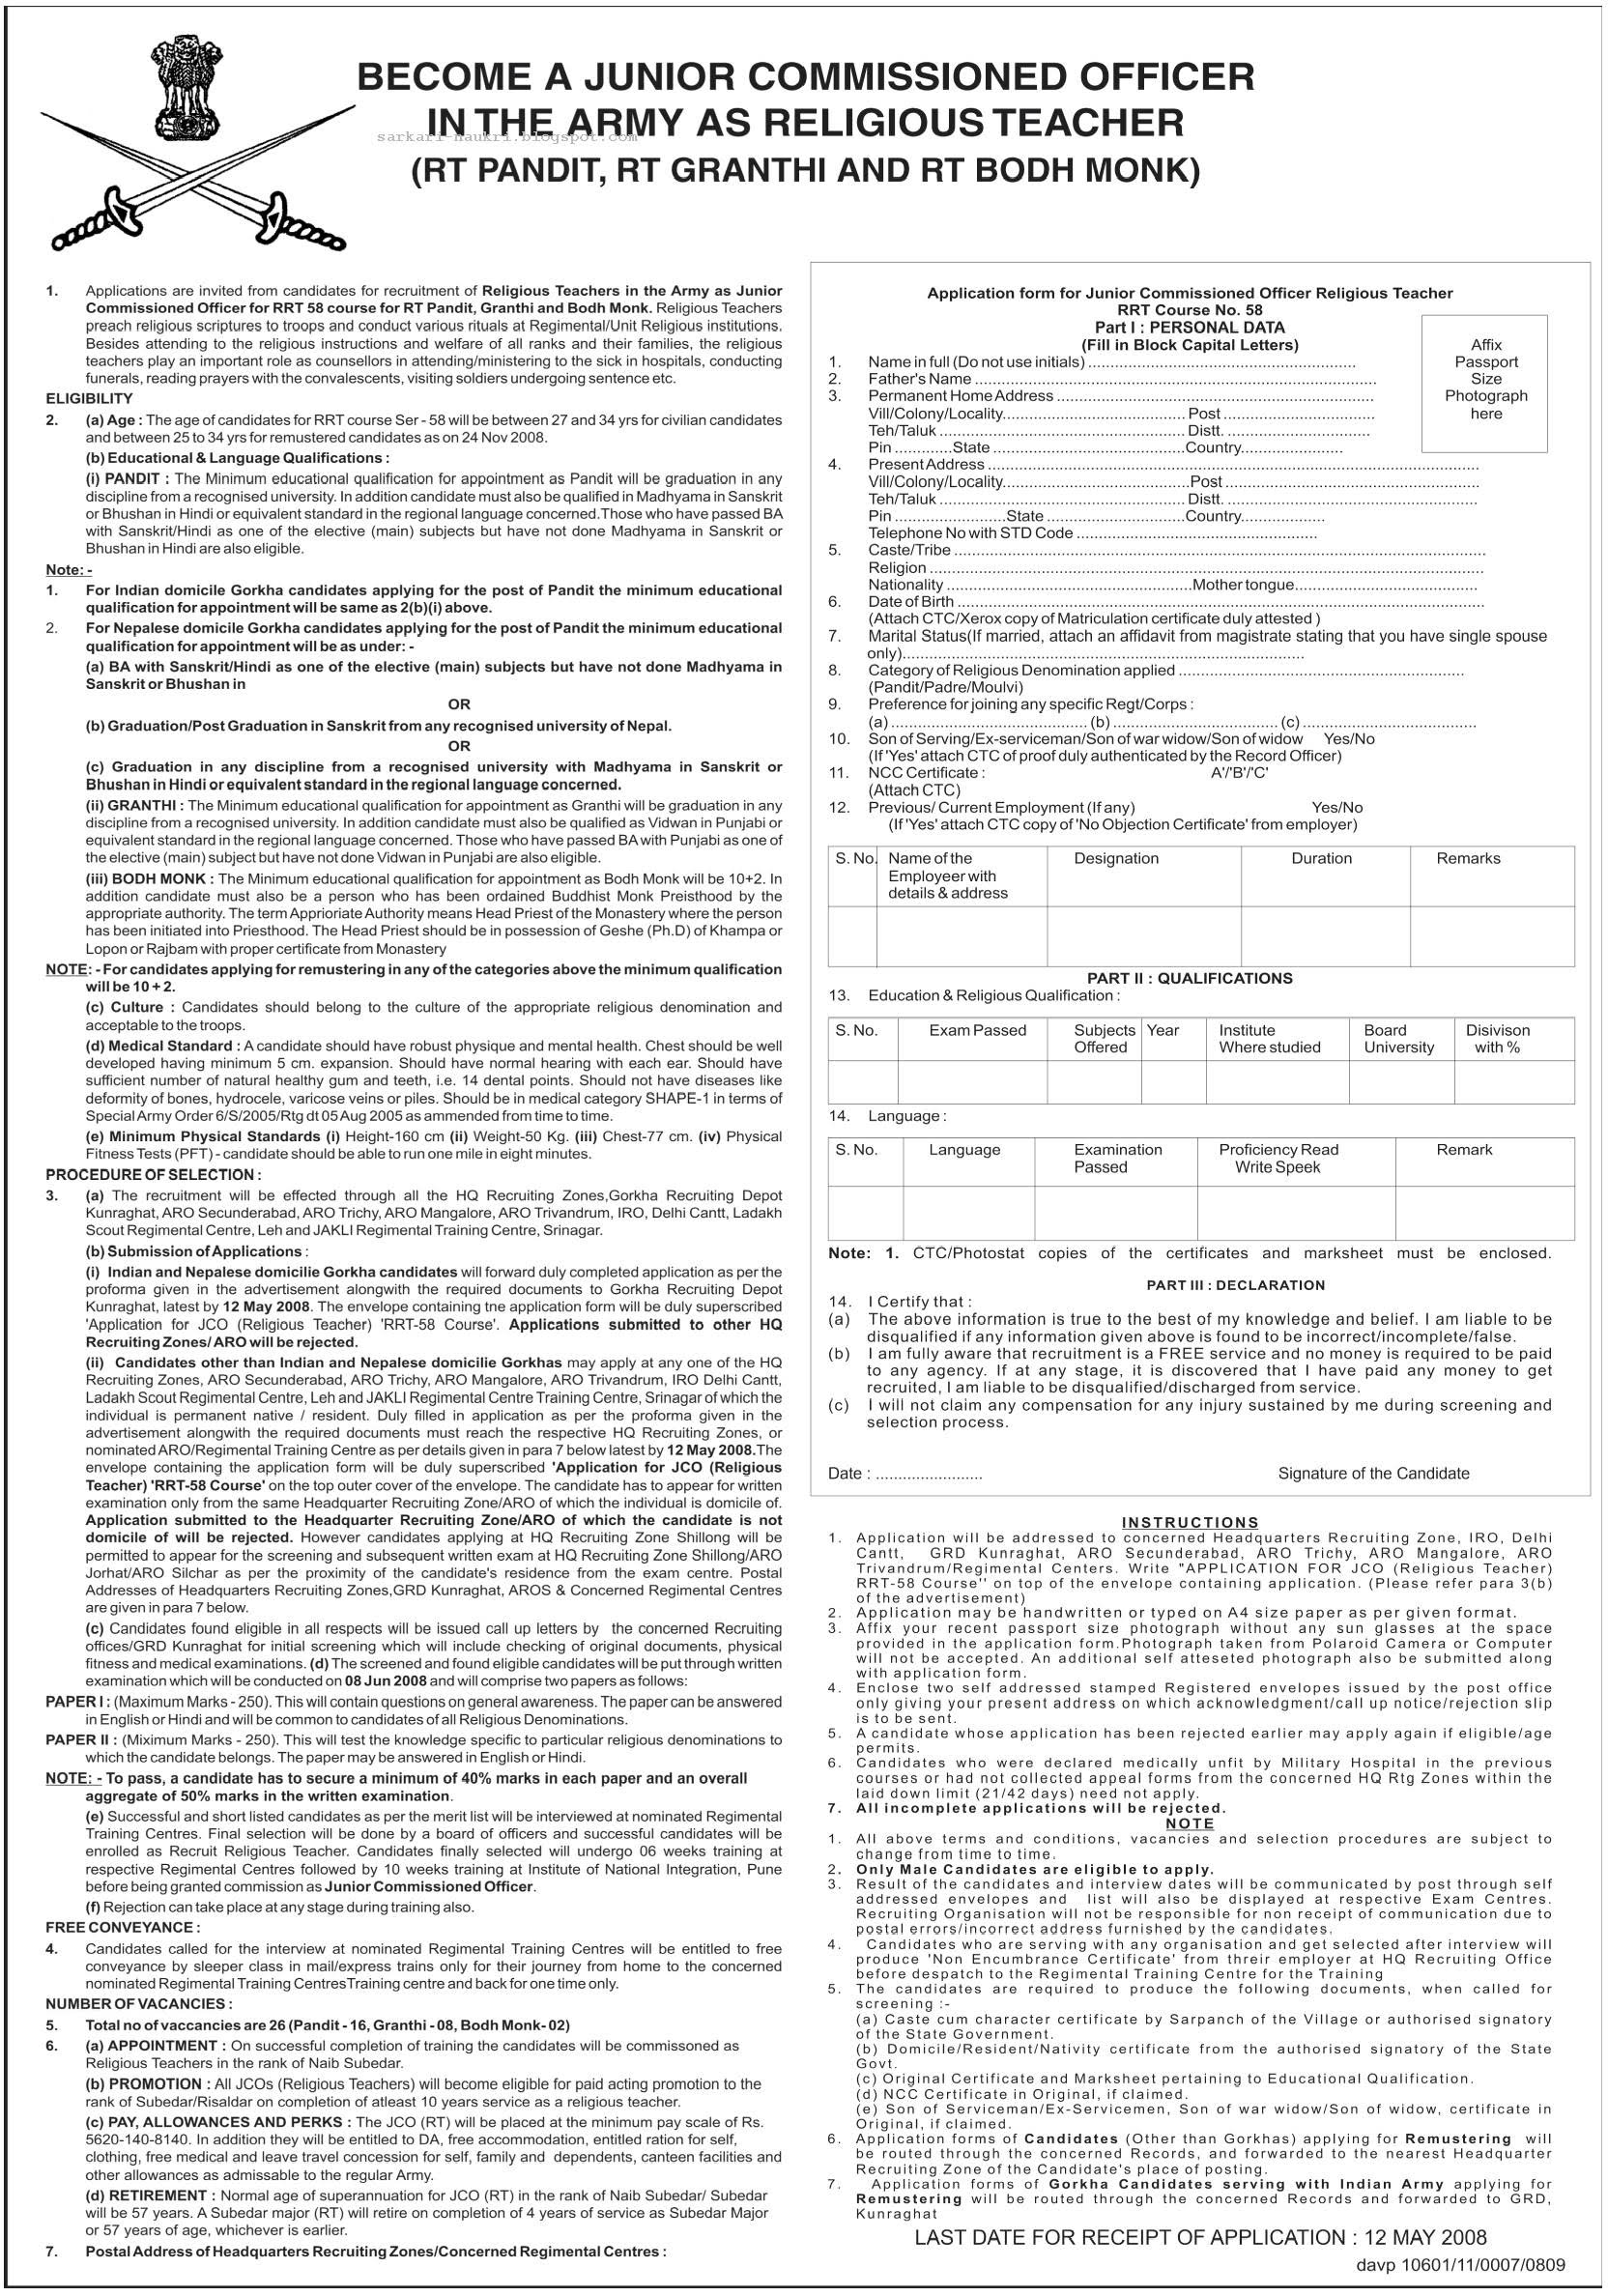 update sarkari naukri: Army JCO (Religious Teacher) entry RRT 58 on army military records search, army counseling examples, blank employee incident report form, sample direct deposit form, employee action form, army medical corps, army trips form.pdf, army code of conduct, army recruiting application, army home, army letter of acceptance, army sop examples, army sworn statement example, army letter of application, army privacy act statement, army dental corps, direct deposit sign-up form, army personal data sheet, sales tax exemption form,